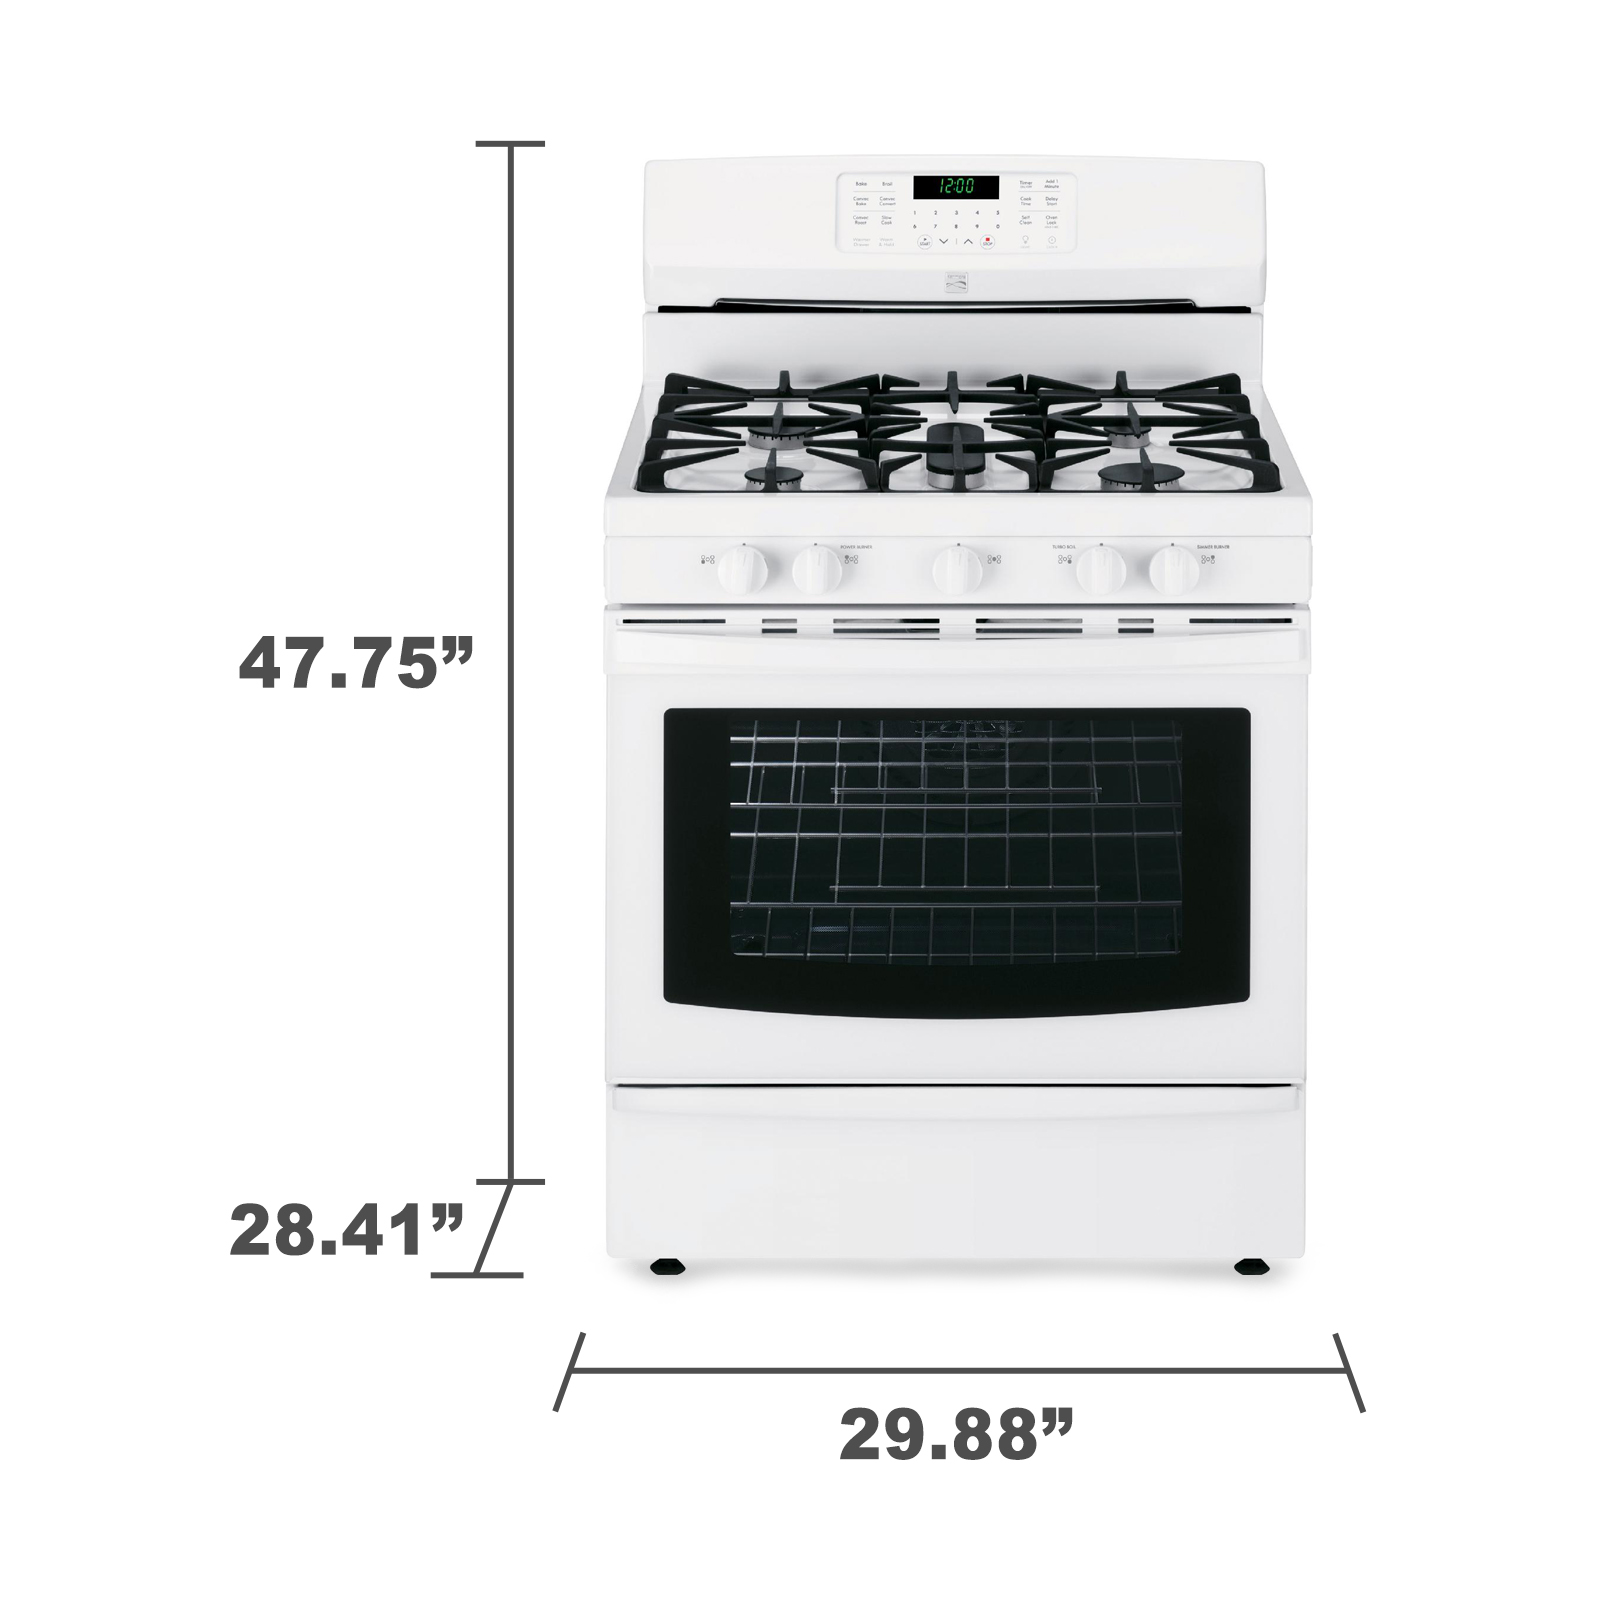 Kenmore 74332 5.6 cu. ft.  Gas Range w/ True Convection - White